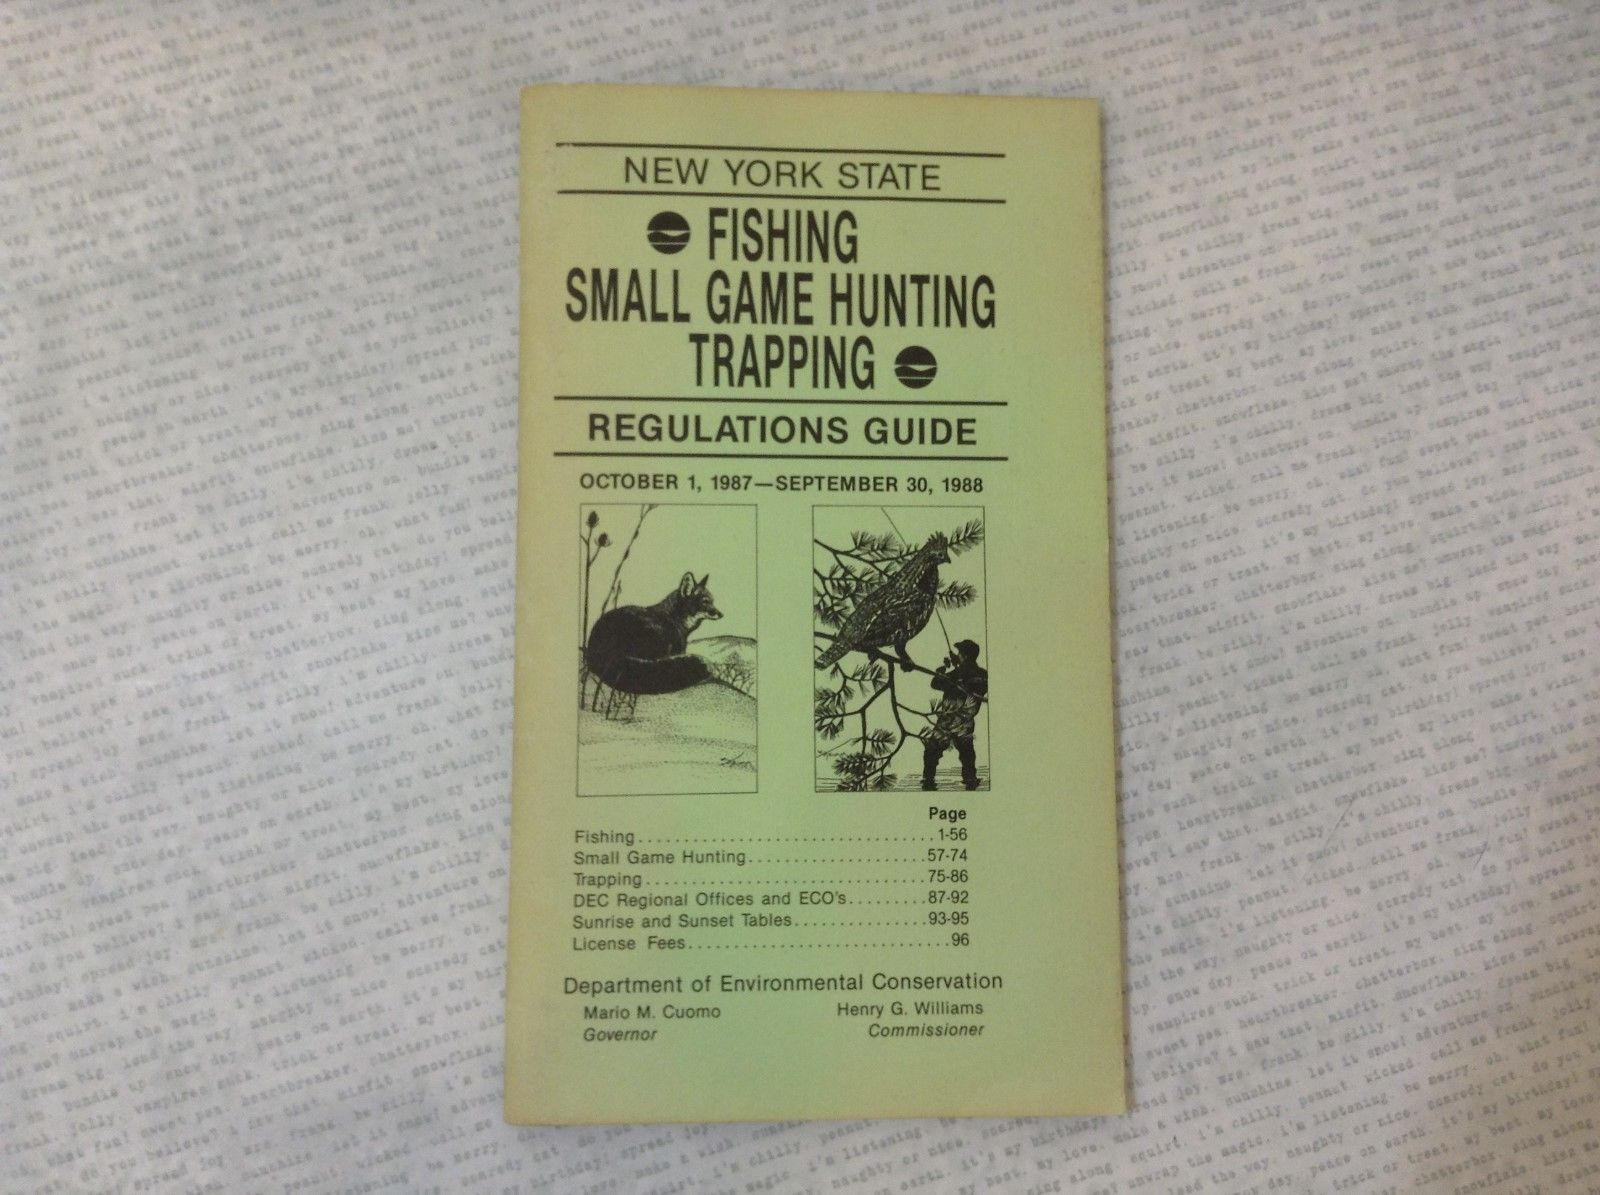 New York State Fishing Small Game Hunting Trapping Regulations Guide 1987-88